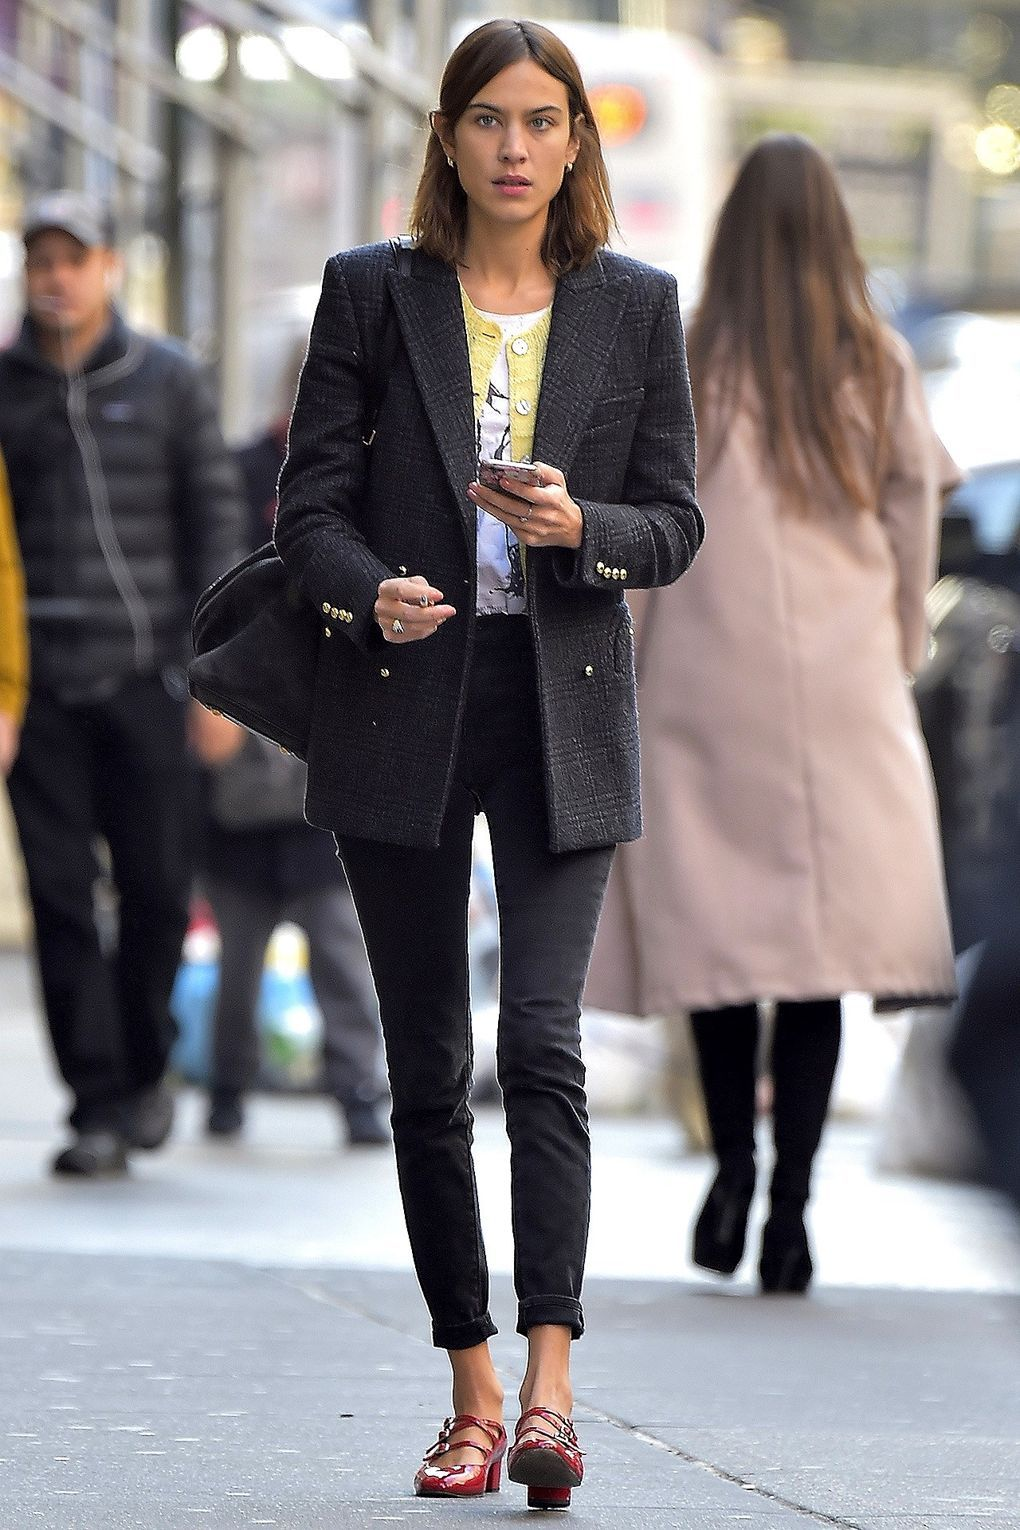 Out and about in Soho, the perennially cool Alexa lived up to her title in black skinnies, a double-breasted blazer and red Mary Janes.